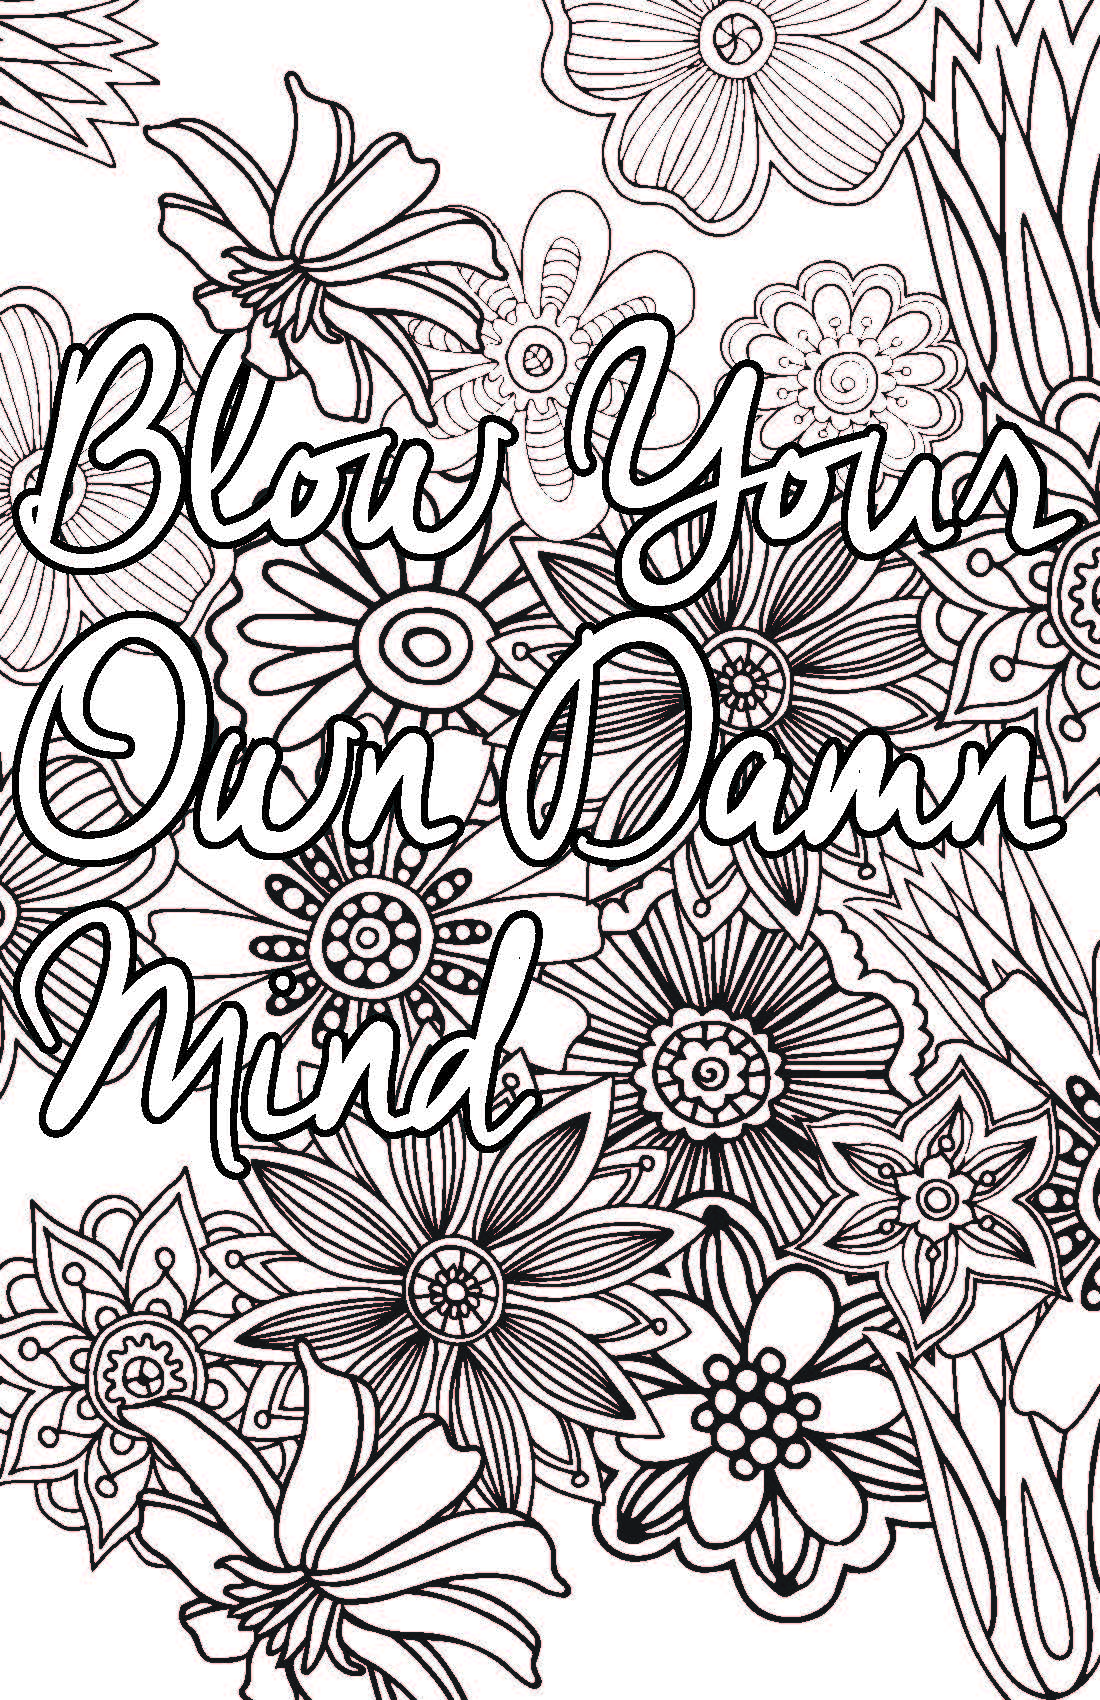 Adult Coloring Pages That Say Exactly What You Need To Hear